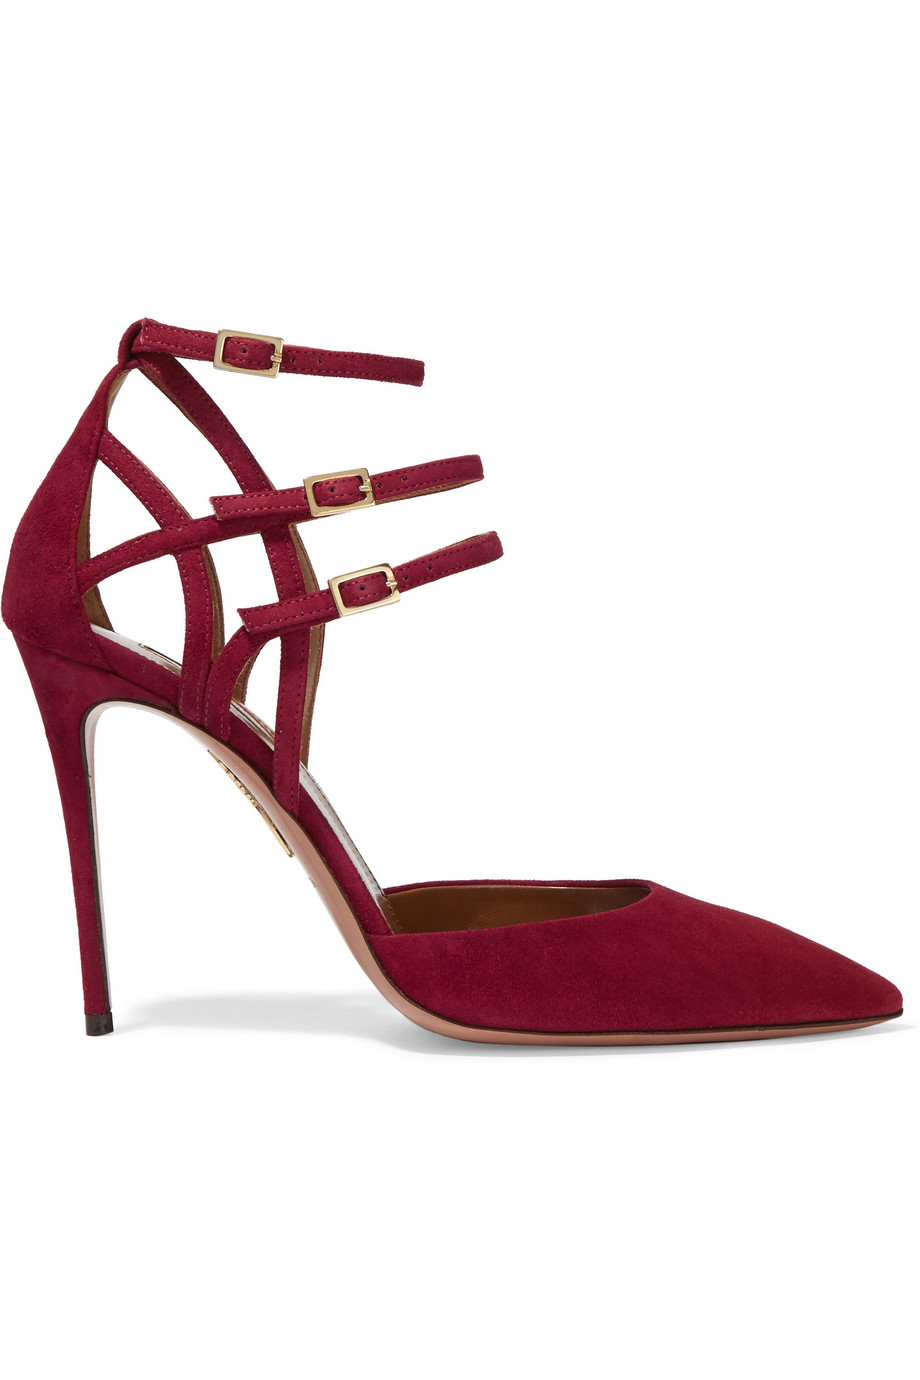 Aquazzura Ginger suede pumps